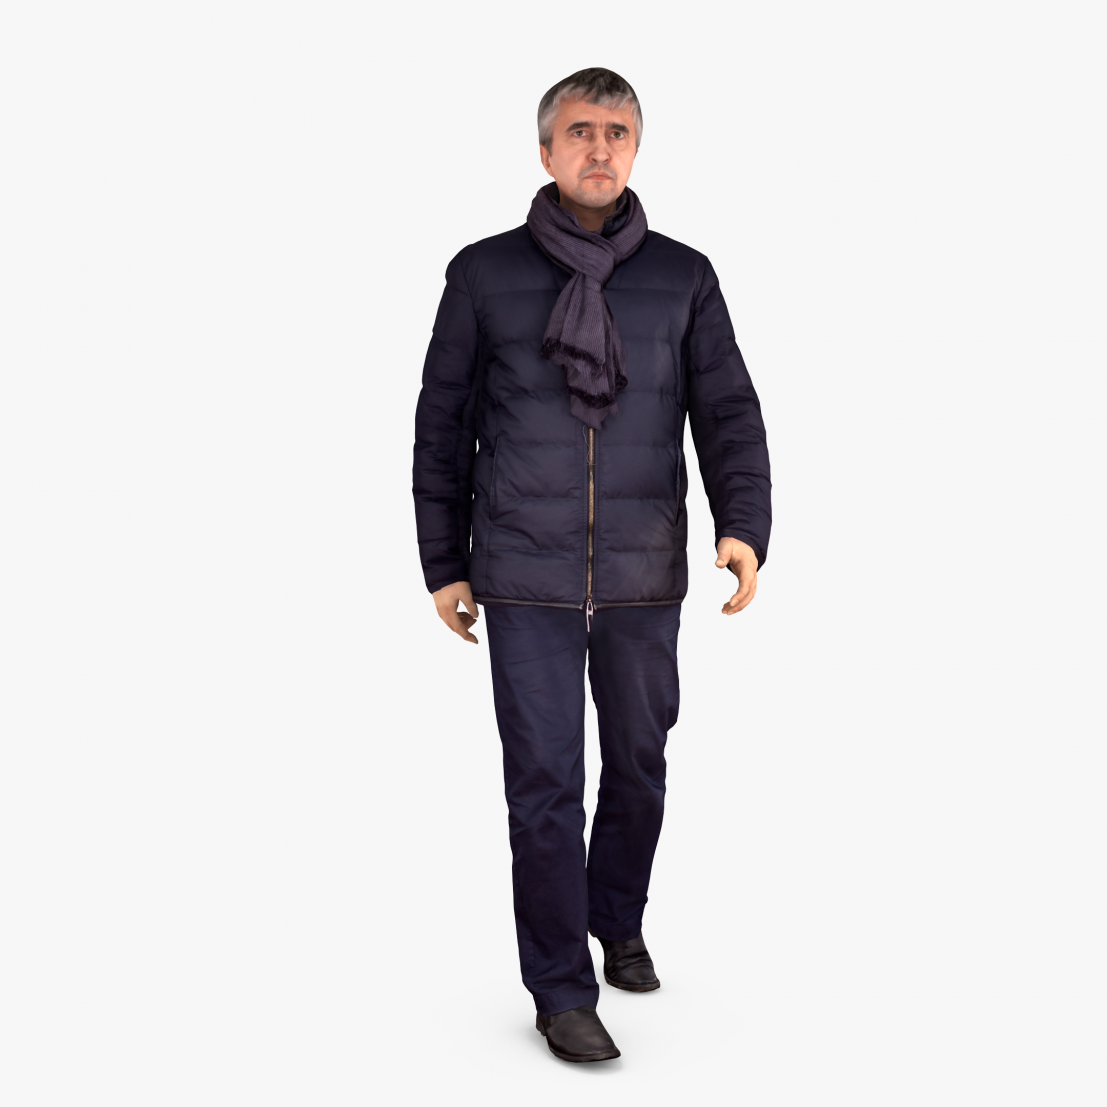 Casual Man Winter 3D Model | 3DTree Scanning Studio